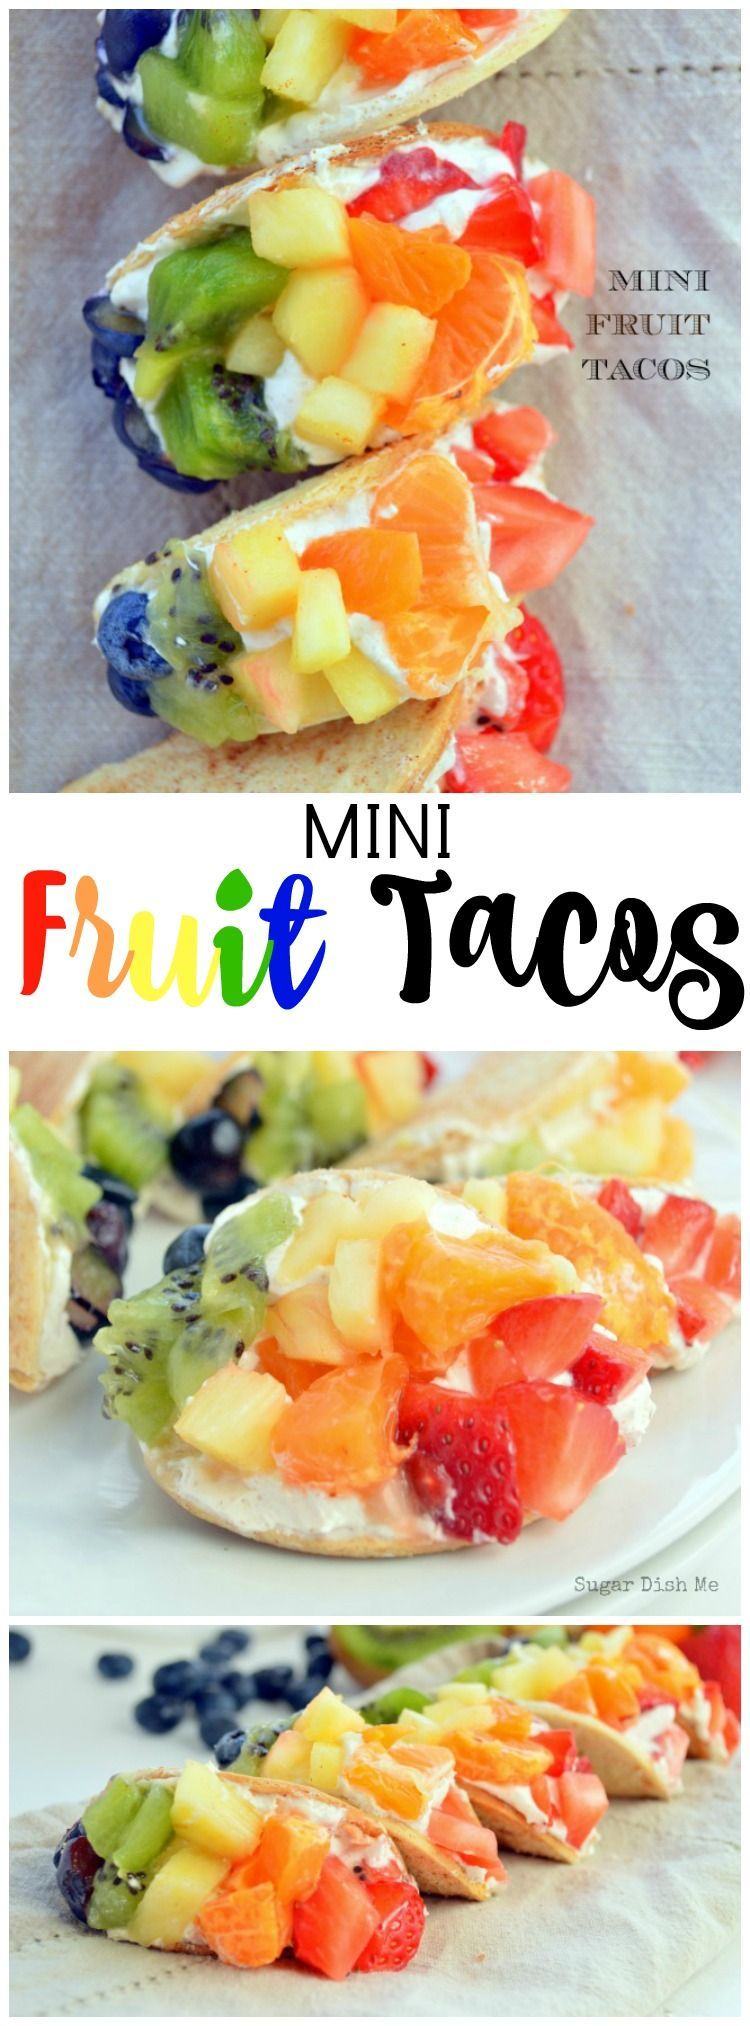 Fruit Tacos These Mini Fruit Tacos are perfect appetizers or desserts! There's a dream cheese filling and a cinnamon sugar shell! Super cute! You'll love 'emThese Mini Fruit Tacos are perfect appetizers or desserts! There's a dream cheese filling and a cinnamon sugar shell! Super cute! You'll love 'em